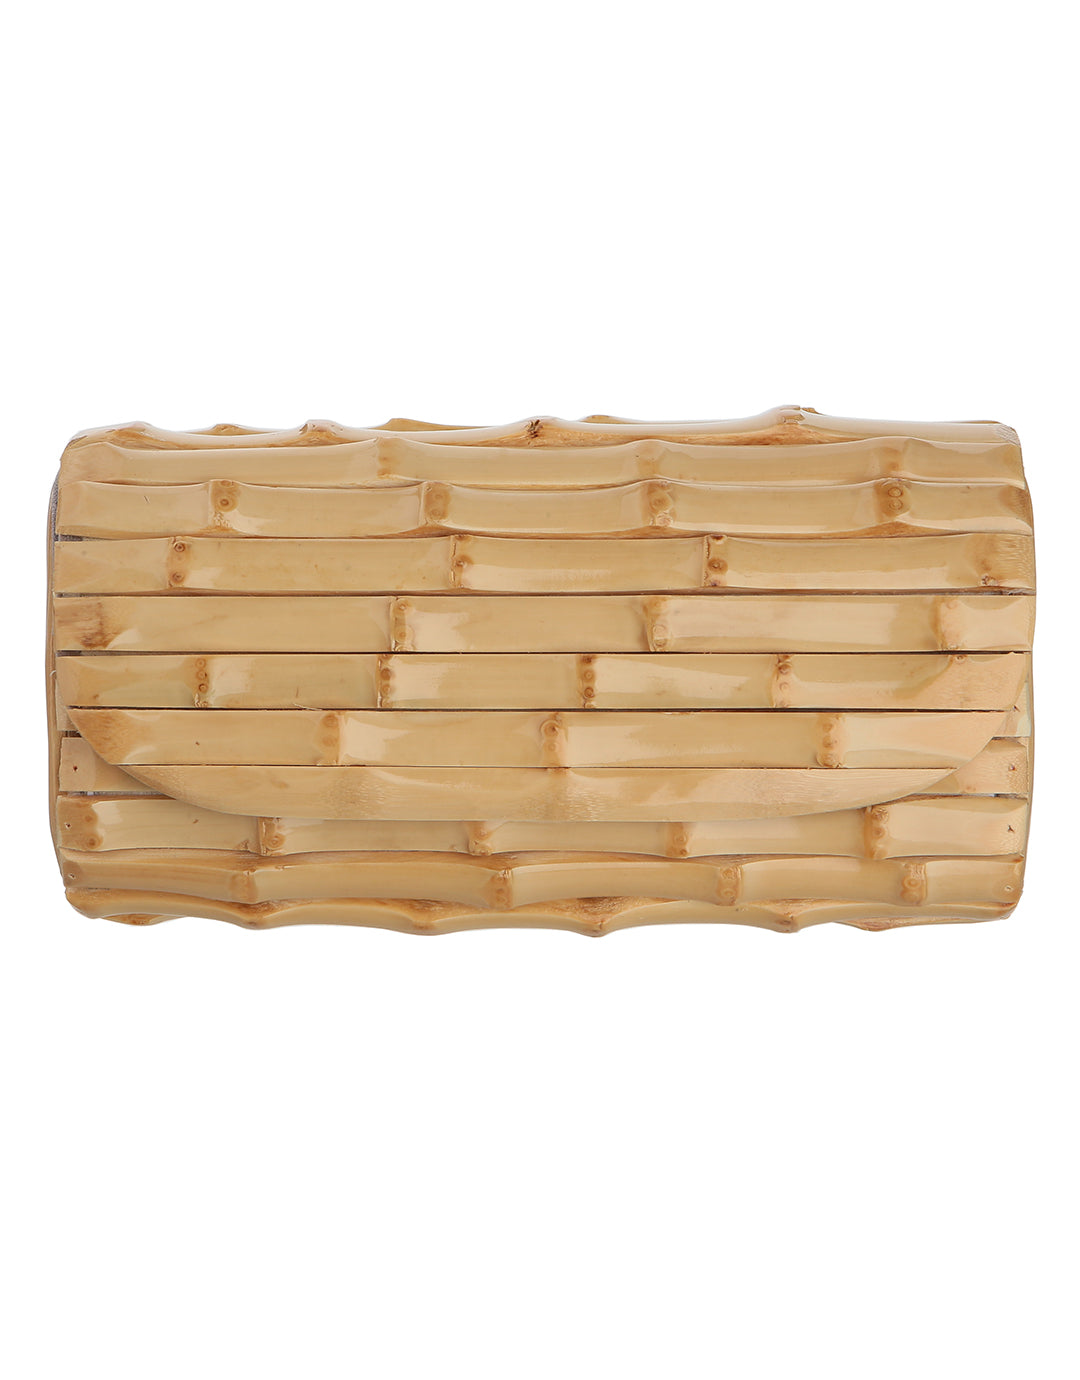 Heidi Klein Savannah Bay Bamboo Clutch Bag - Bamboo